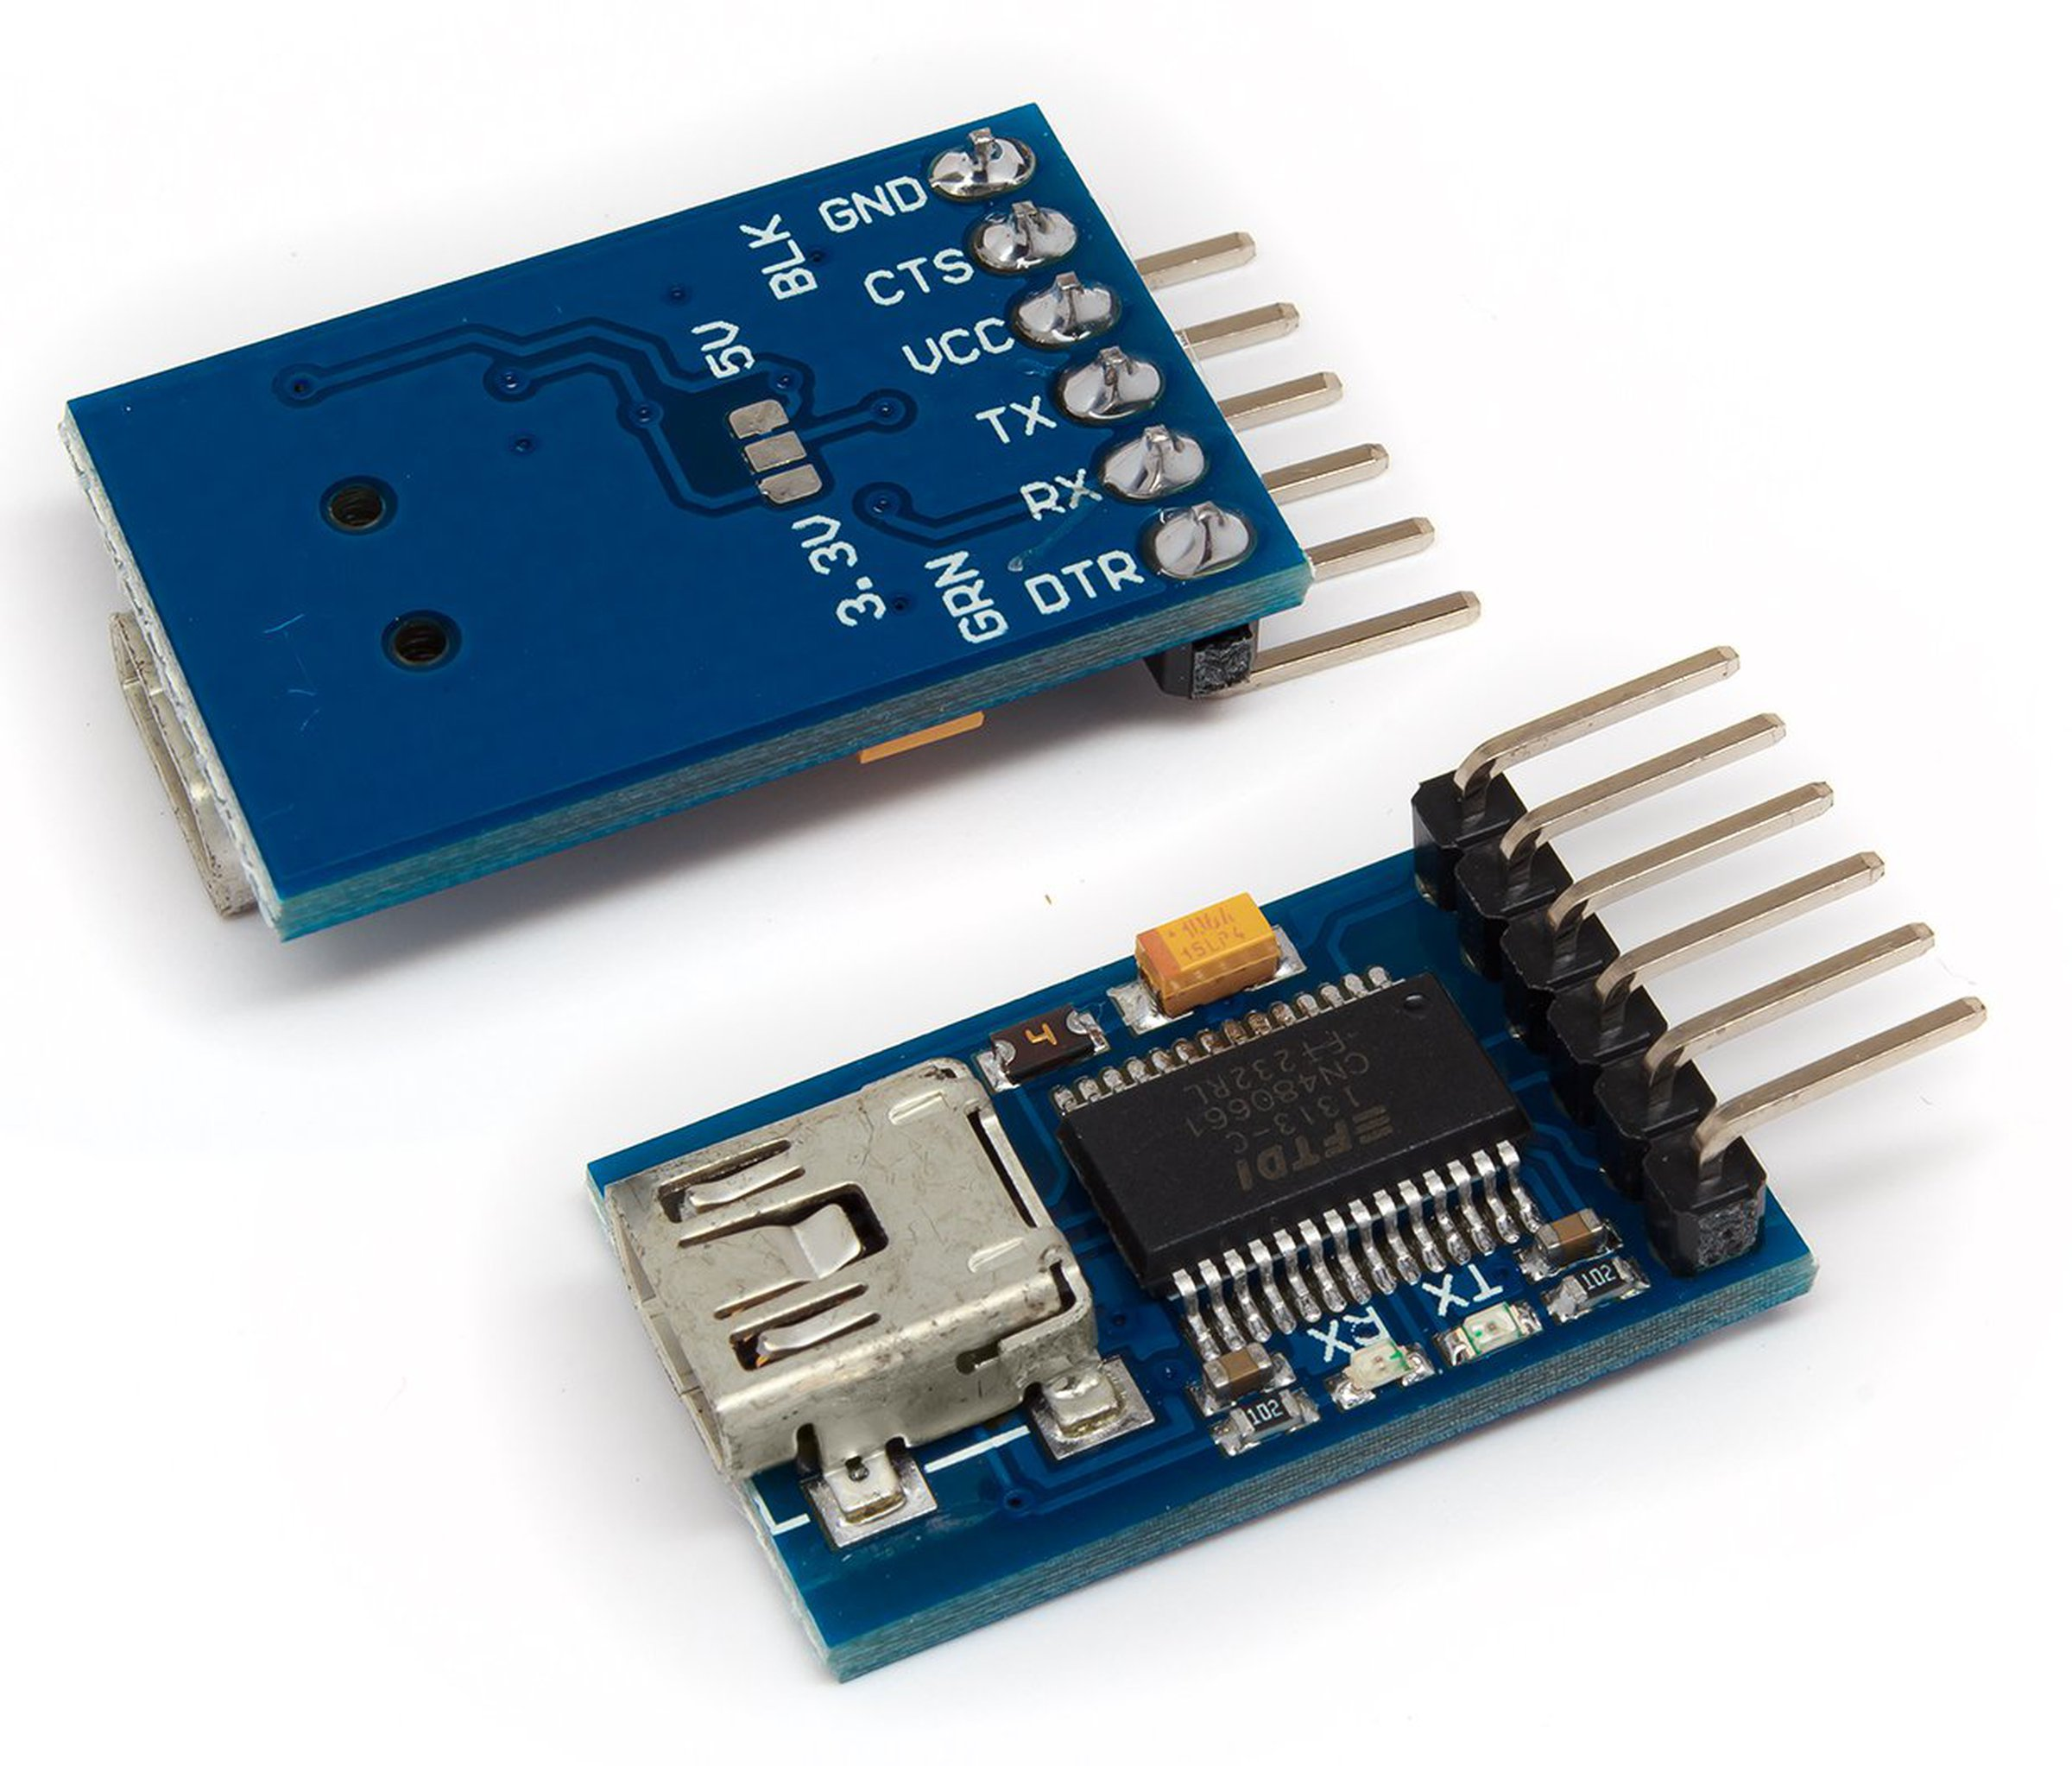 Ftdi basic usb to serial converter from upgrade industries